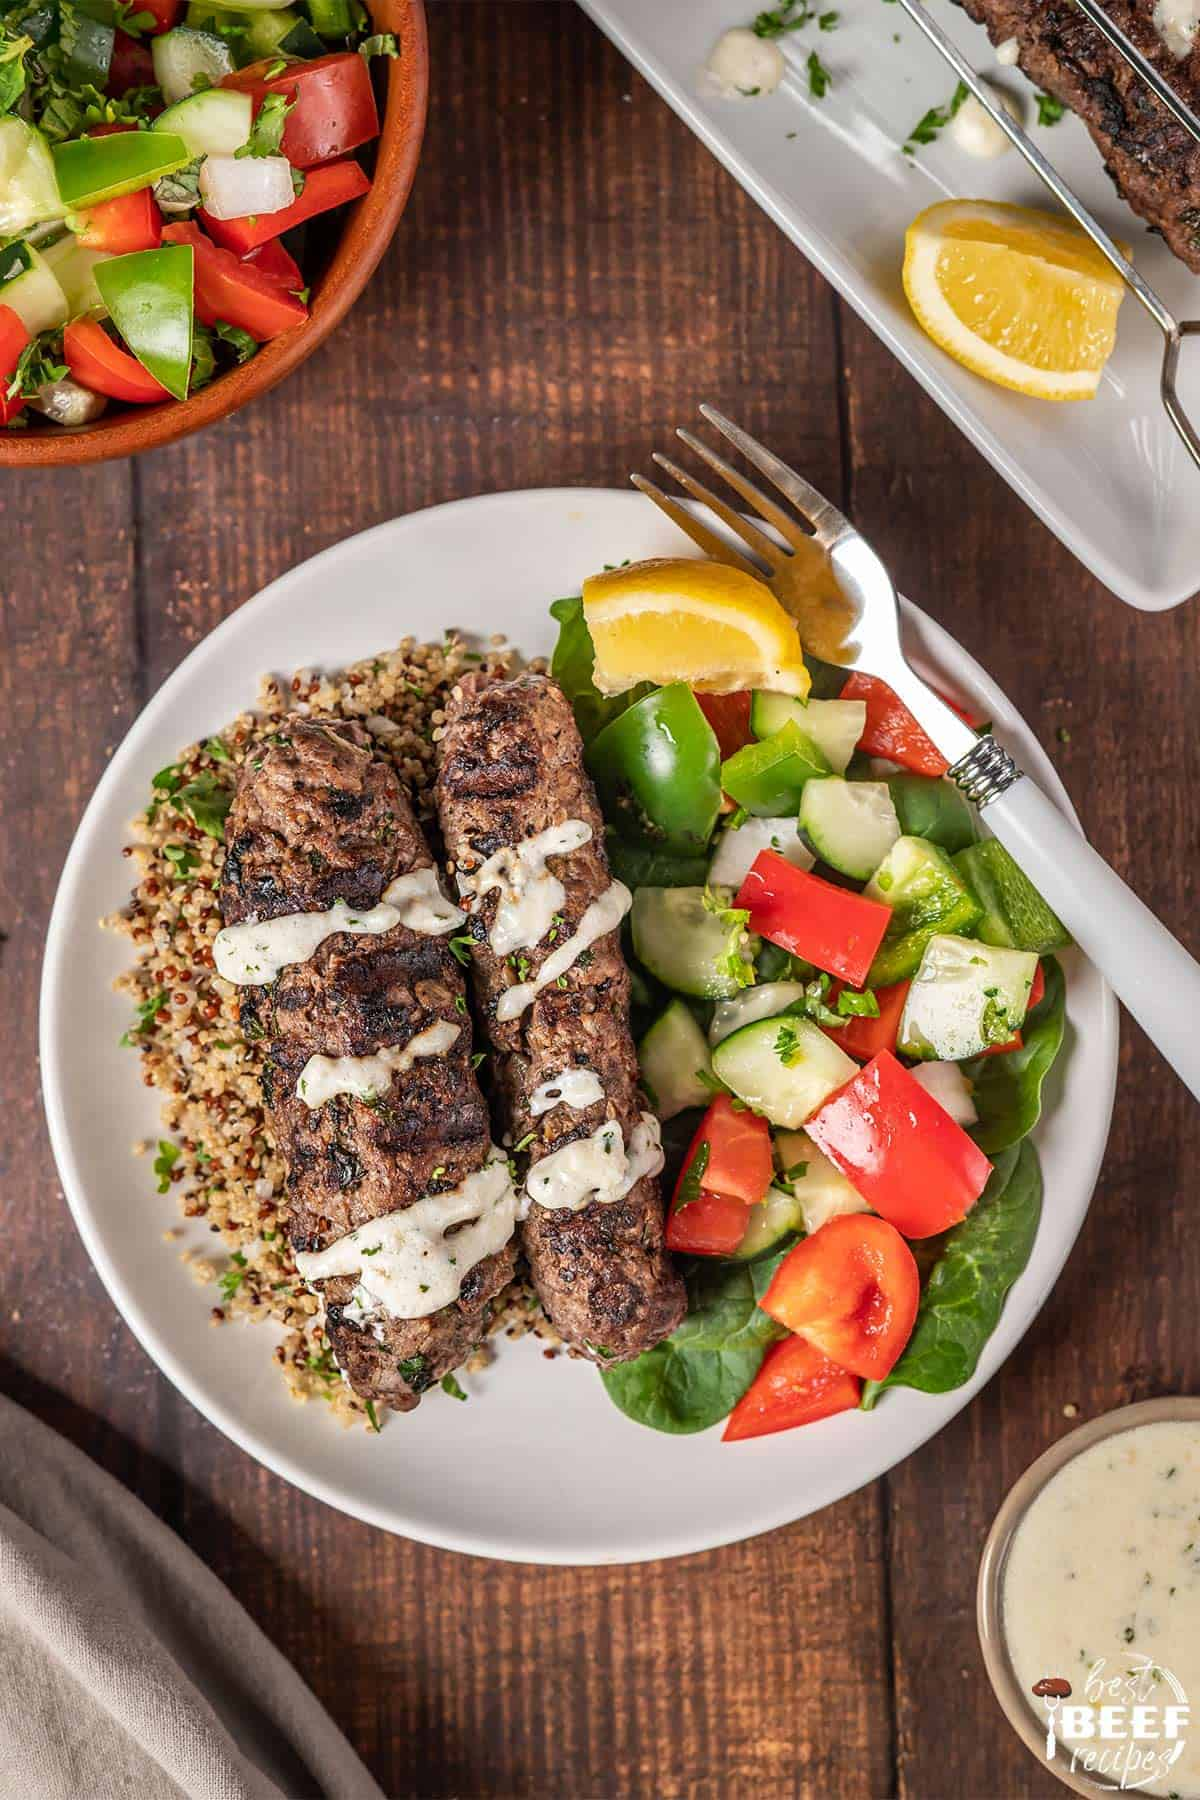 Kofta kebabs on a white plate with vegetables on the side